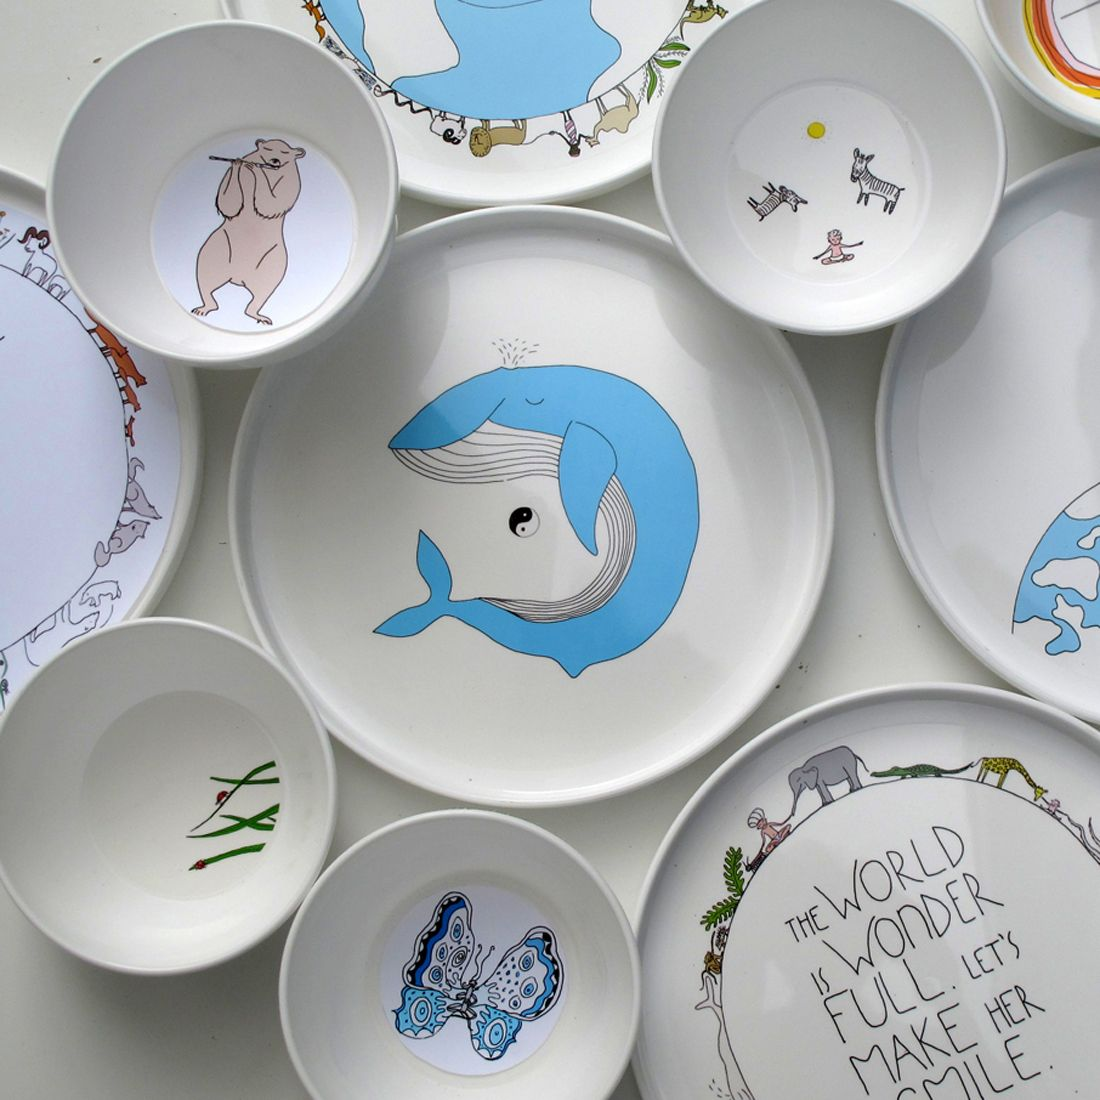 100% recycled made in the USA non-toxic dinnerware.  sc 1 st  Pinterest & 100% recycled made in the USA non-toxic dinnerware. | Baby | Baby ...